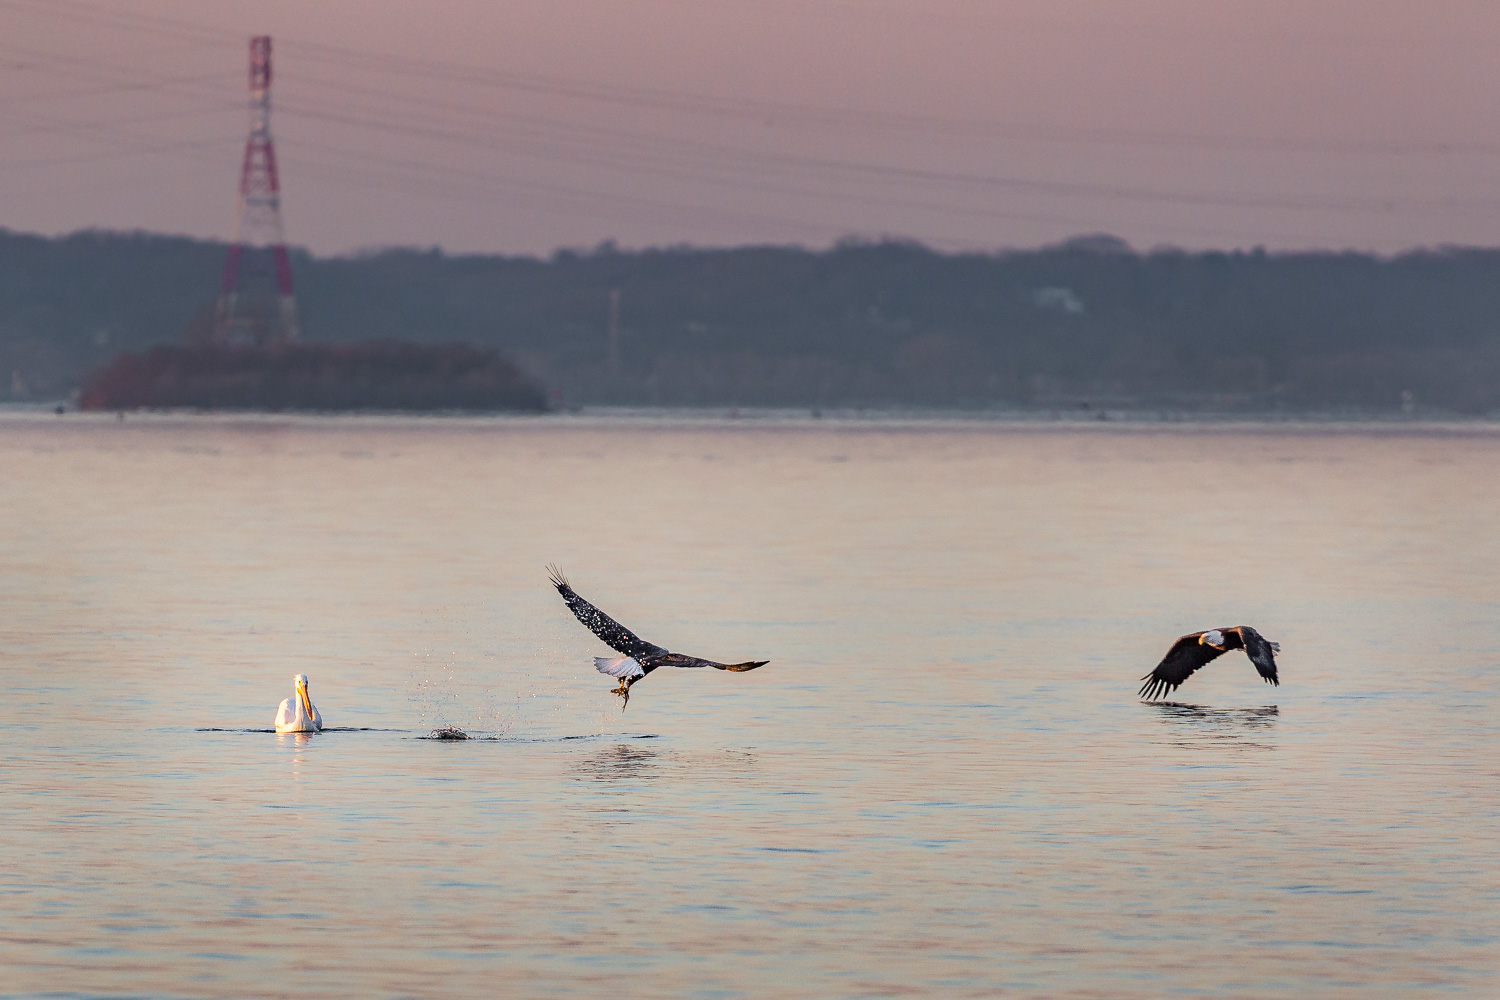 The competition is fierce among the eagles. When one catches a fish, there is at least one other eagle looking for an opportunity to take it away.